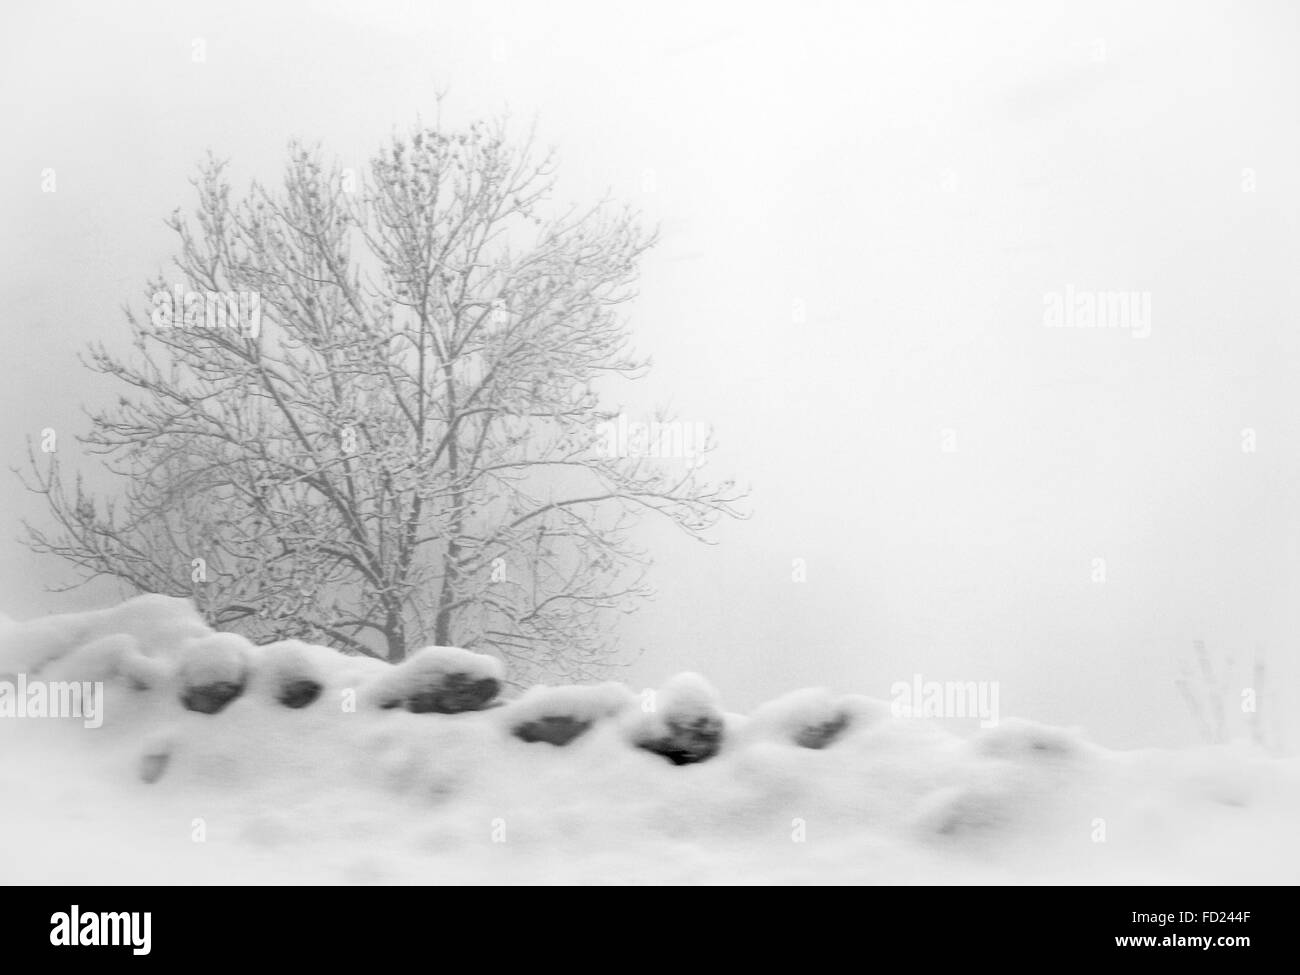 a stone wall and bare tree on the roadside covered in snow in a low poor visibility blizzard, high key - Stock Image